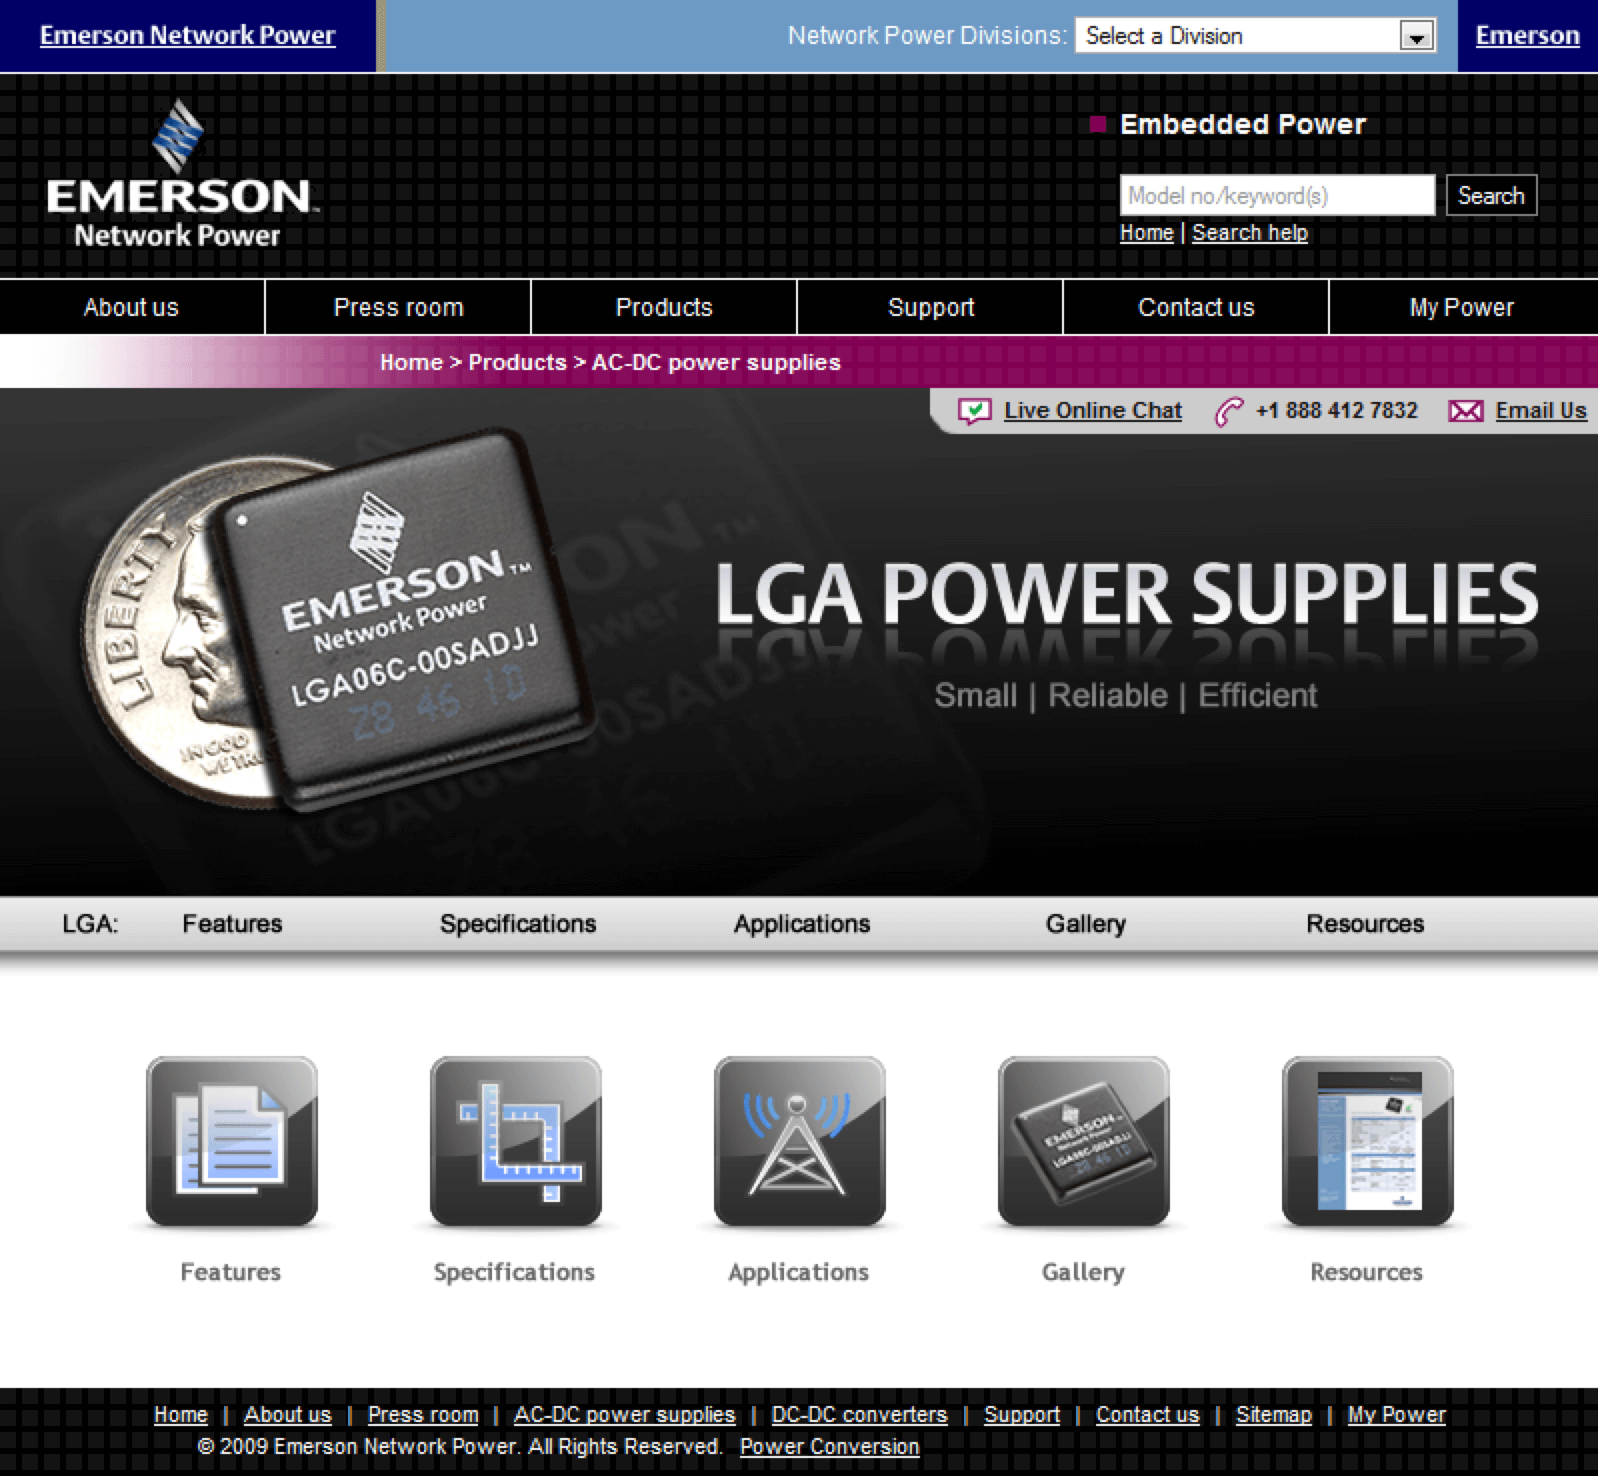 Emerson-LGA-Power-Supplies-Website-Design-Conference-Roadshow